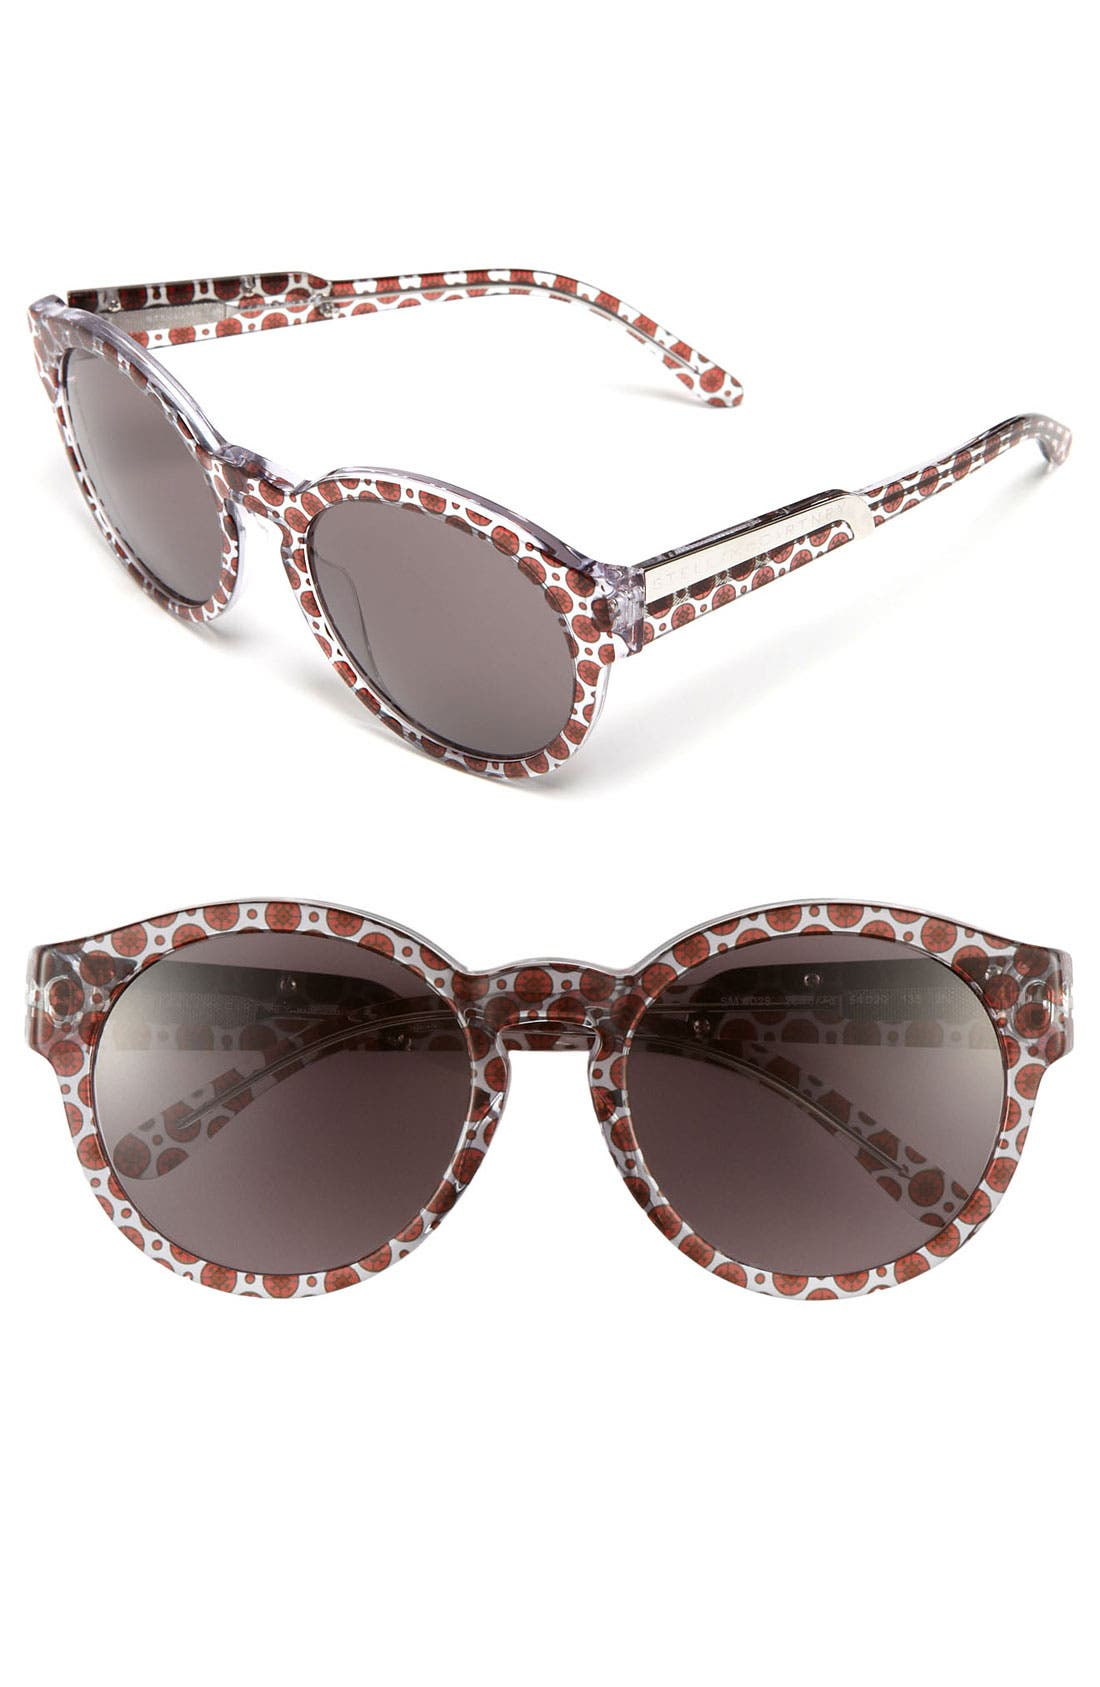 Main Image - Stella McCartney 'Summer Runway Collection' Sunglasses